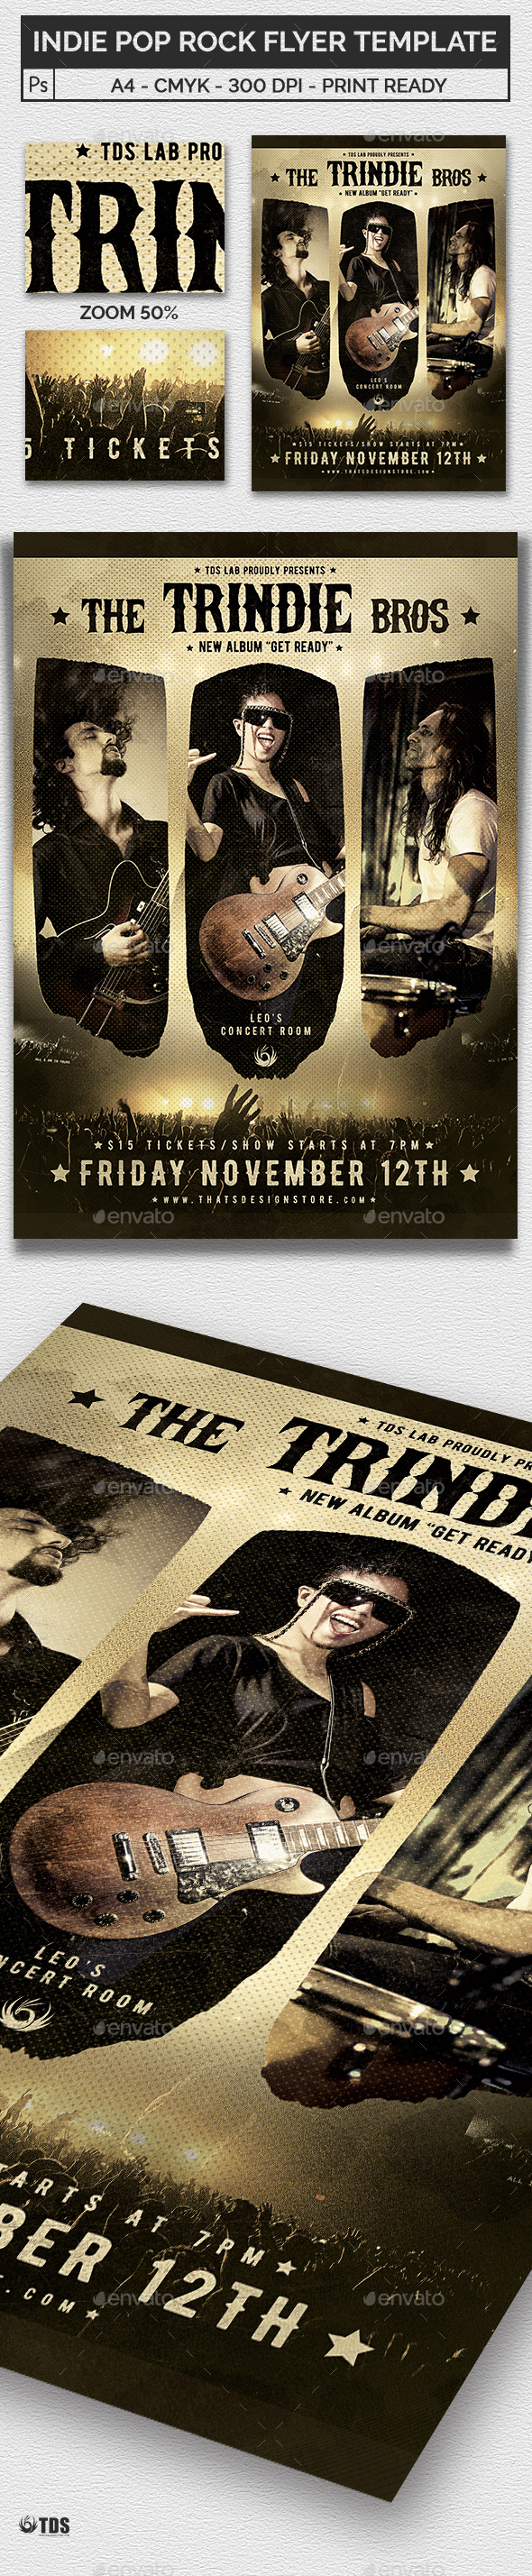 Indie Pop Rock Flyer Template - Concerts Events